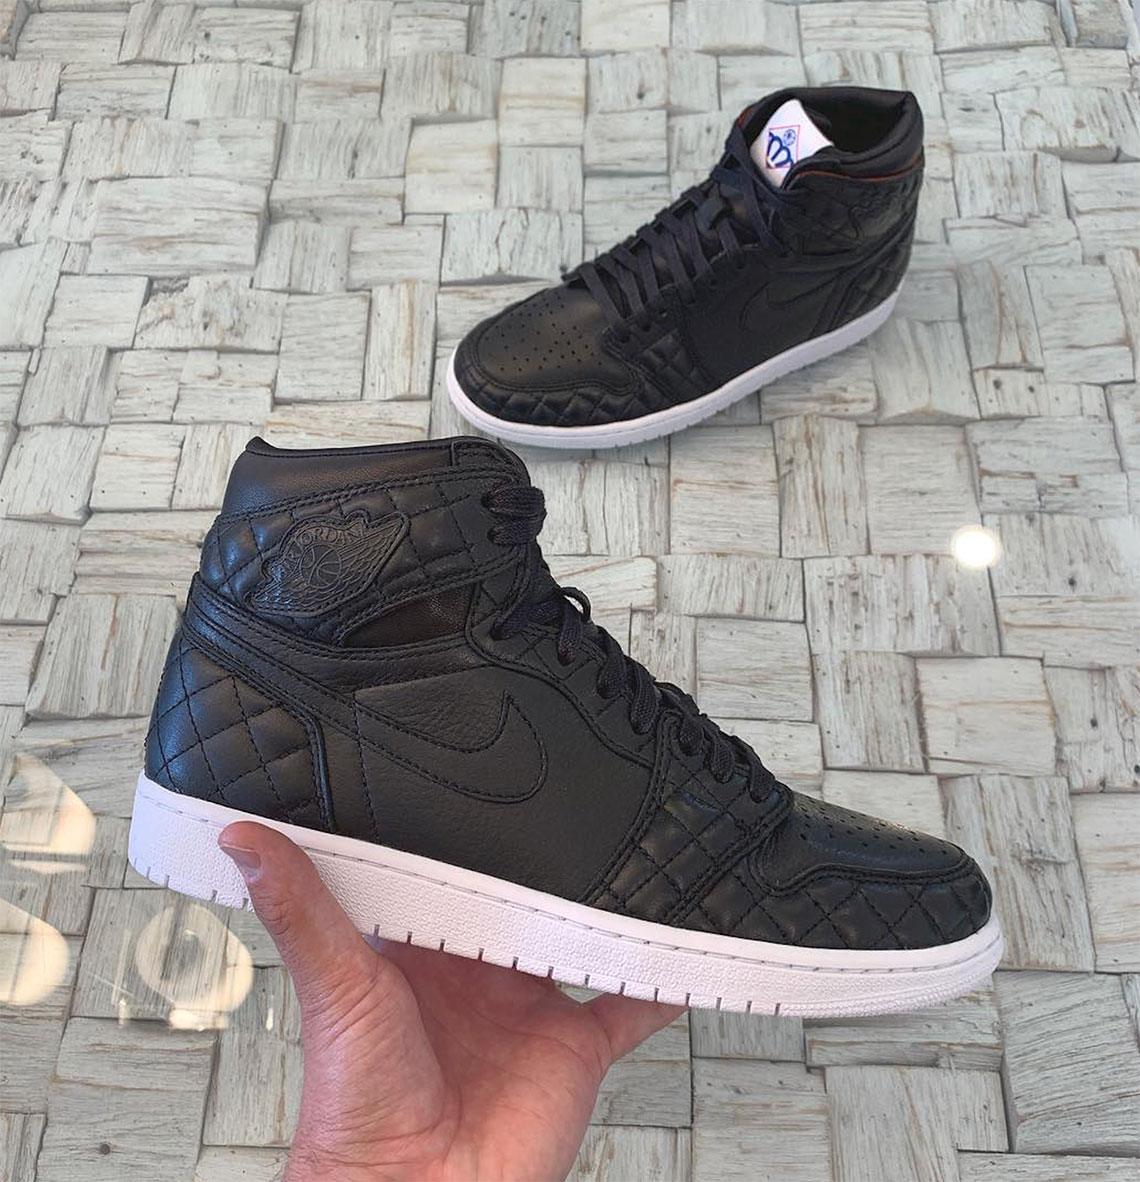 d0a59b93827 ... Air Jordan 1 Friends and Family All Star Black Quilted Leather